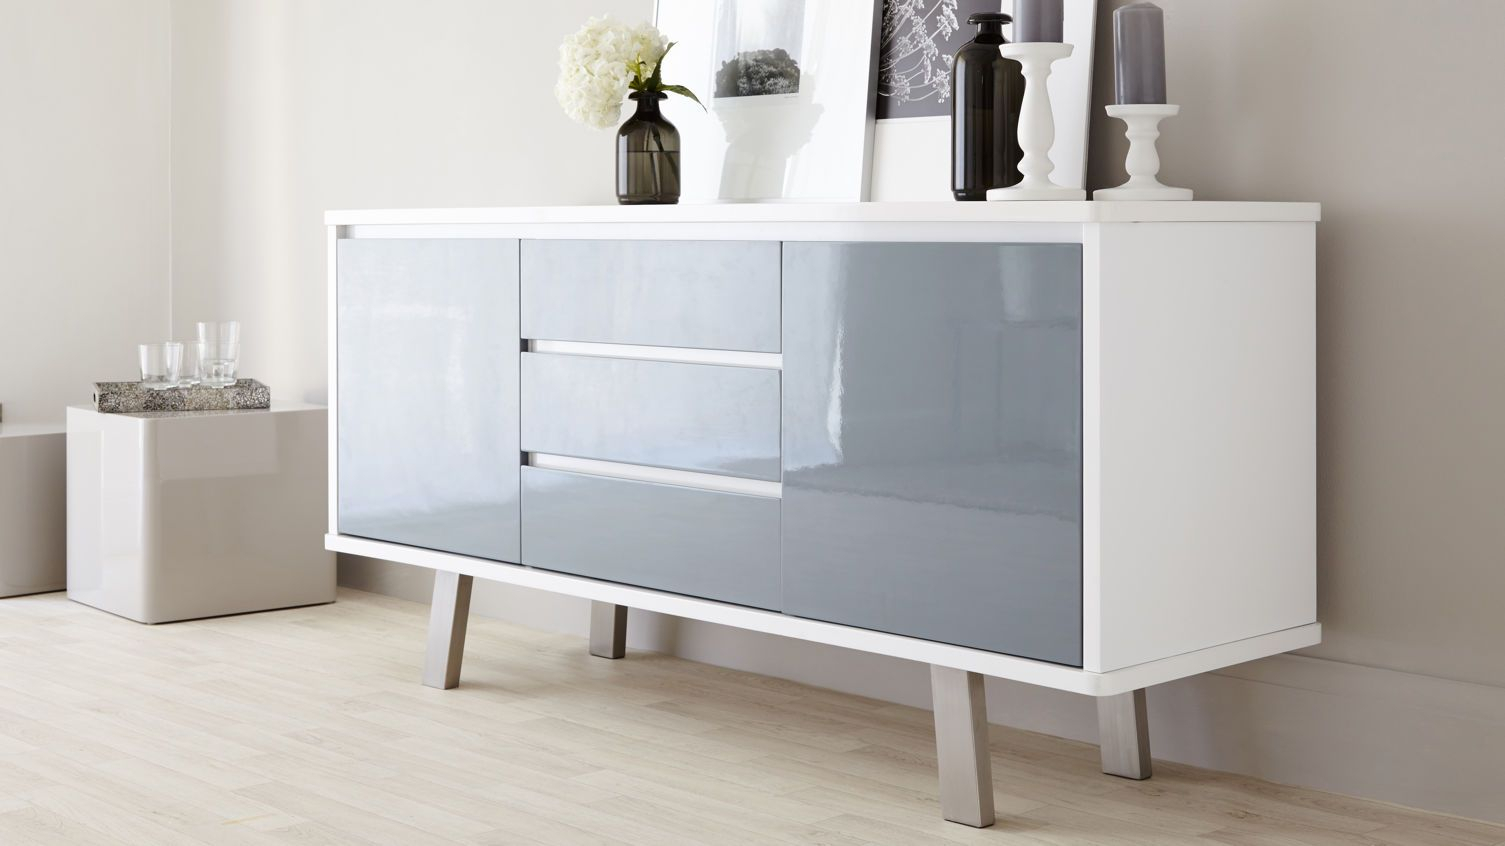 Assi White And Grey Gloss Sideboard | Danetti | Stylish With White Wood And Chrome Metal High Gloss Buffets (View 13 of 30)